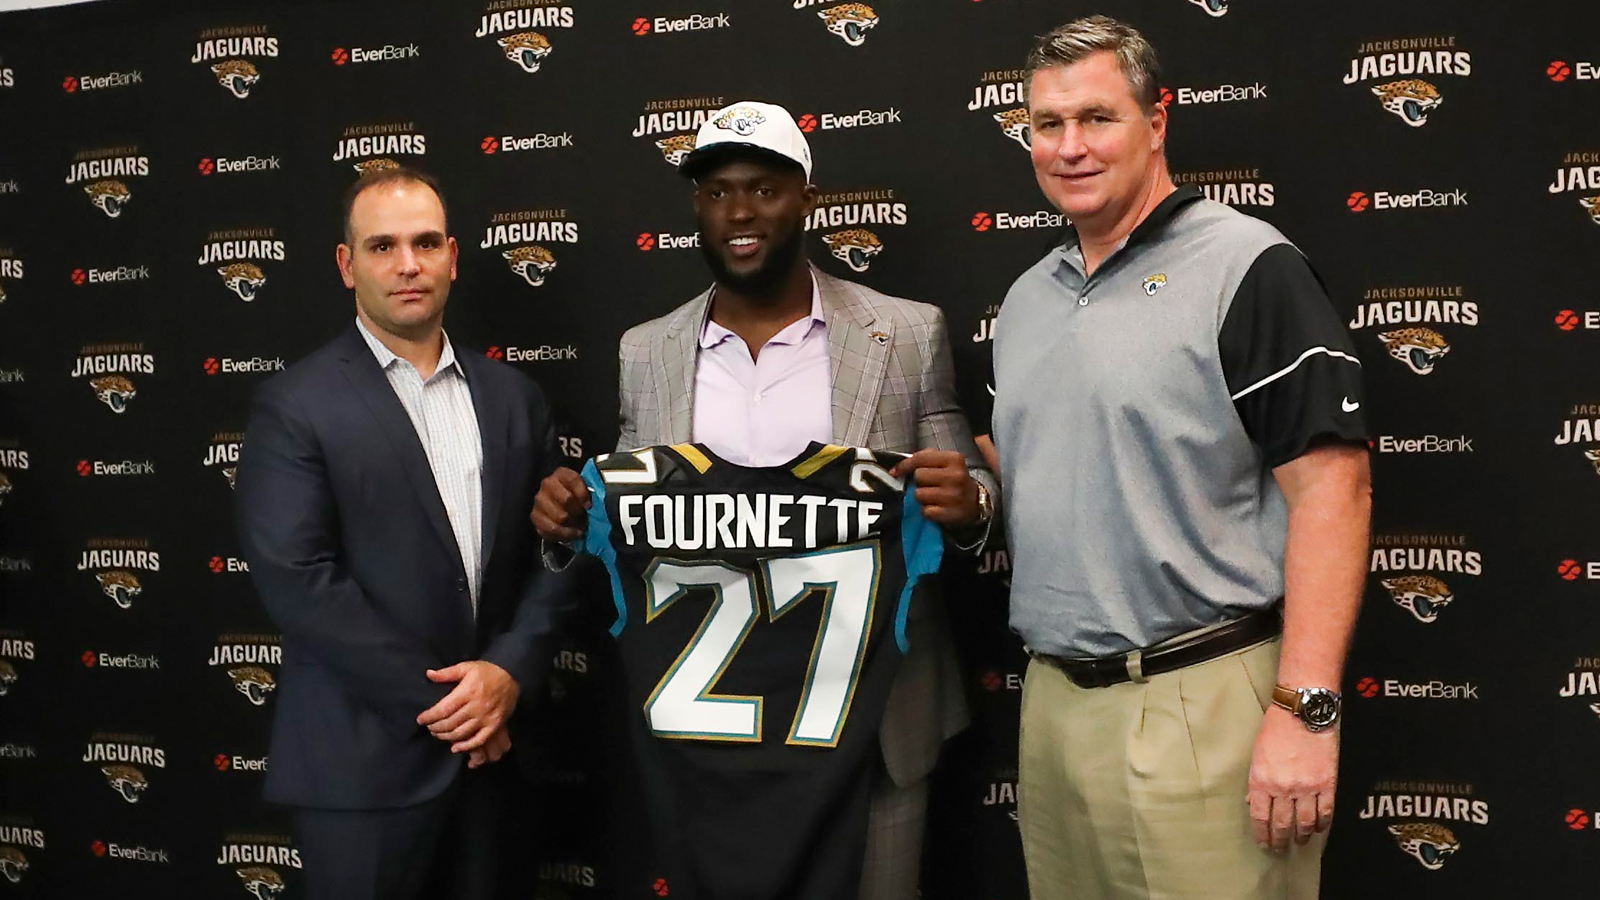 Apr 28, 2017; Jacksonville, FL, USA; Jacksonville Jaguars general manager Dave Caldwell (left), running back Leonard Fournette (center) and head coach Doug Marrone (right) pose for a picture during a press conference at EverBank Field.Leonard Fournette was the 2017 first round pick of the Jacksonville Jaguars.  Mandatory Credit: Logan Bowles-USA TODAY Sports